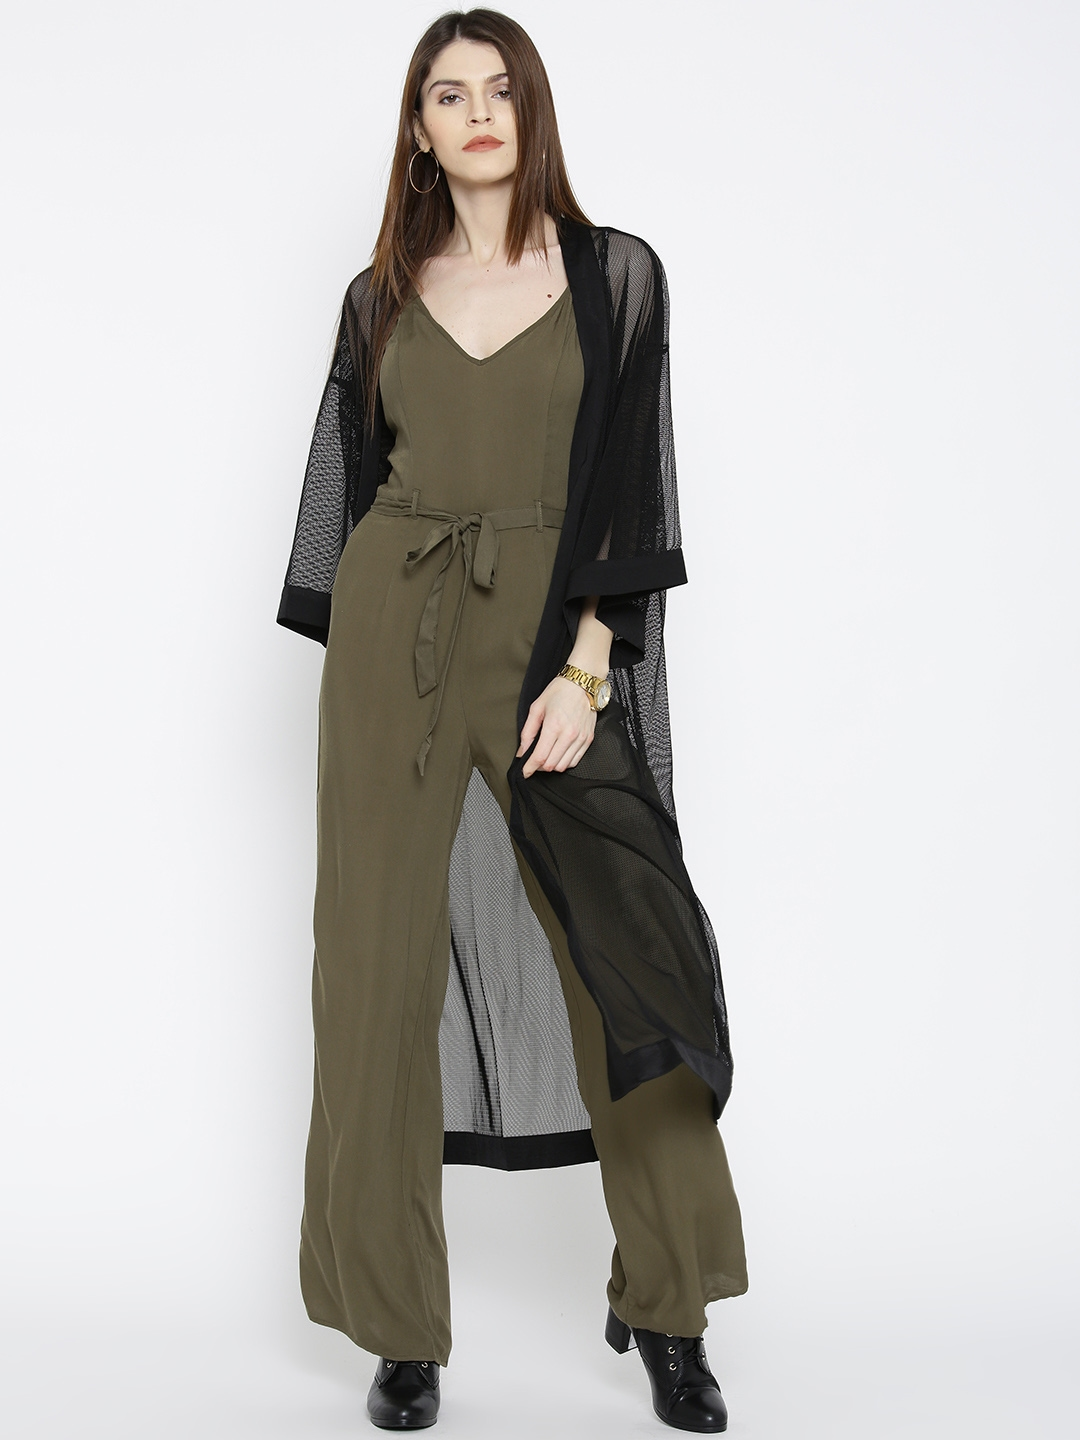 2ccbb9f044a Buy FOREVER 21 Olive Green Solid Jumpsuit - Jumpsuit for Women ...